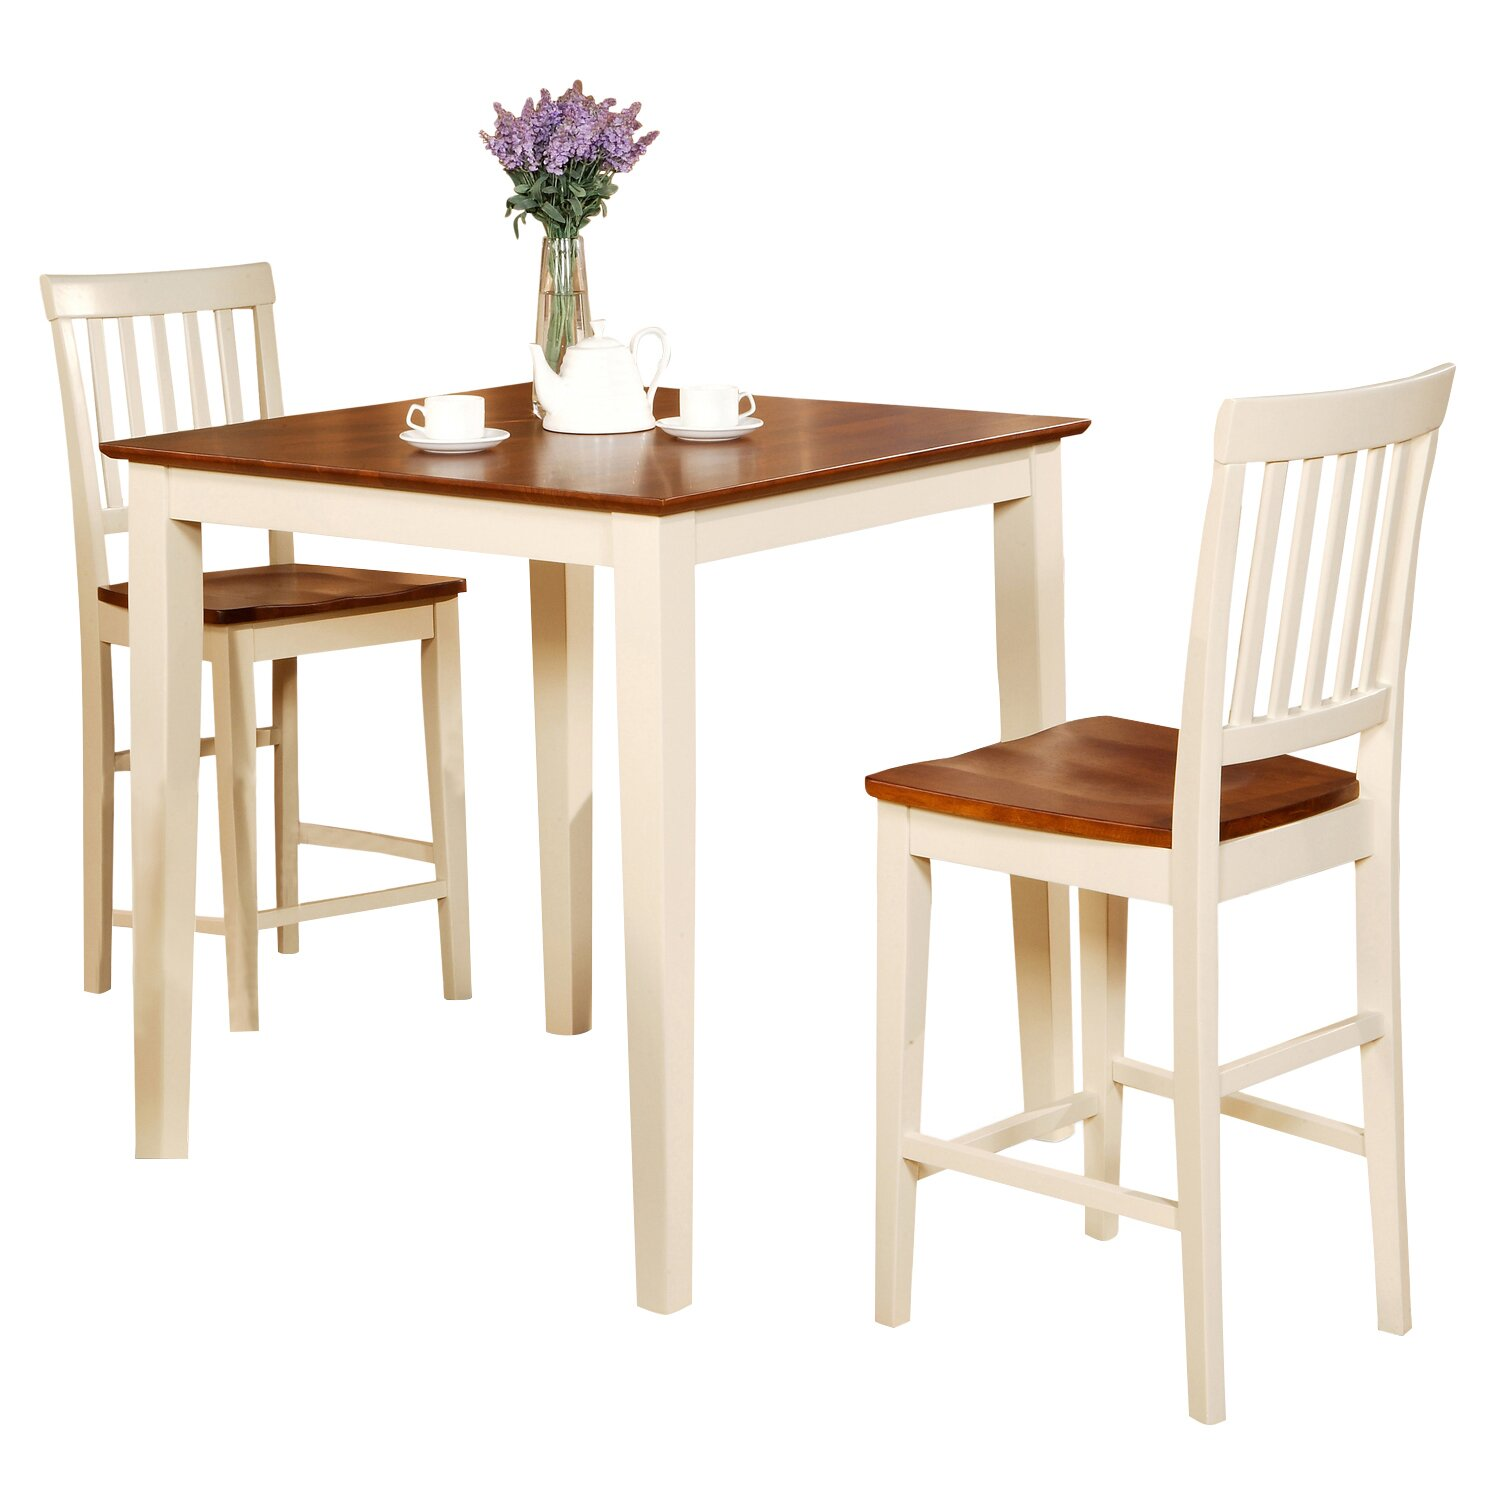 Wooden Importers Vernon 3 Piece Counter Height Dining Set & Reviews | Wayfair